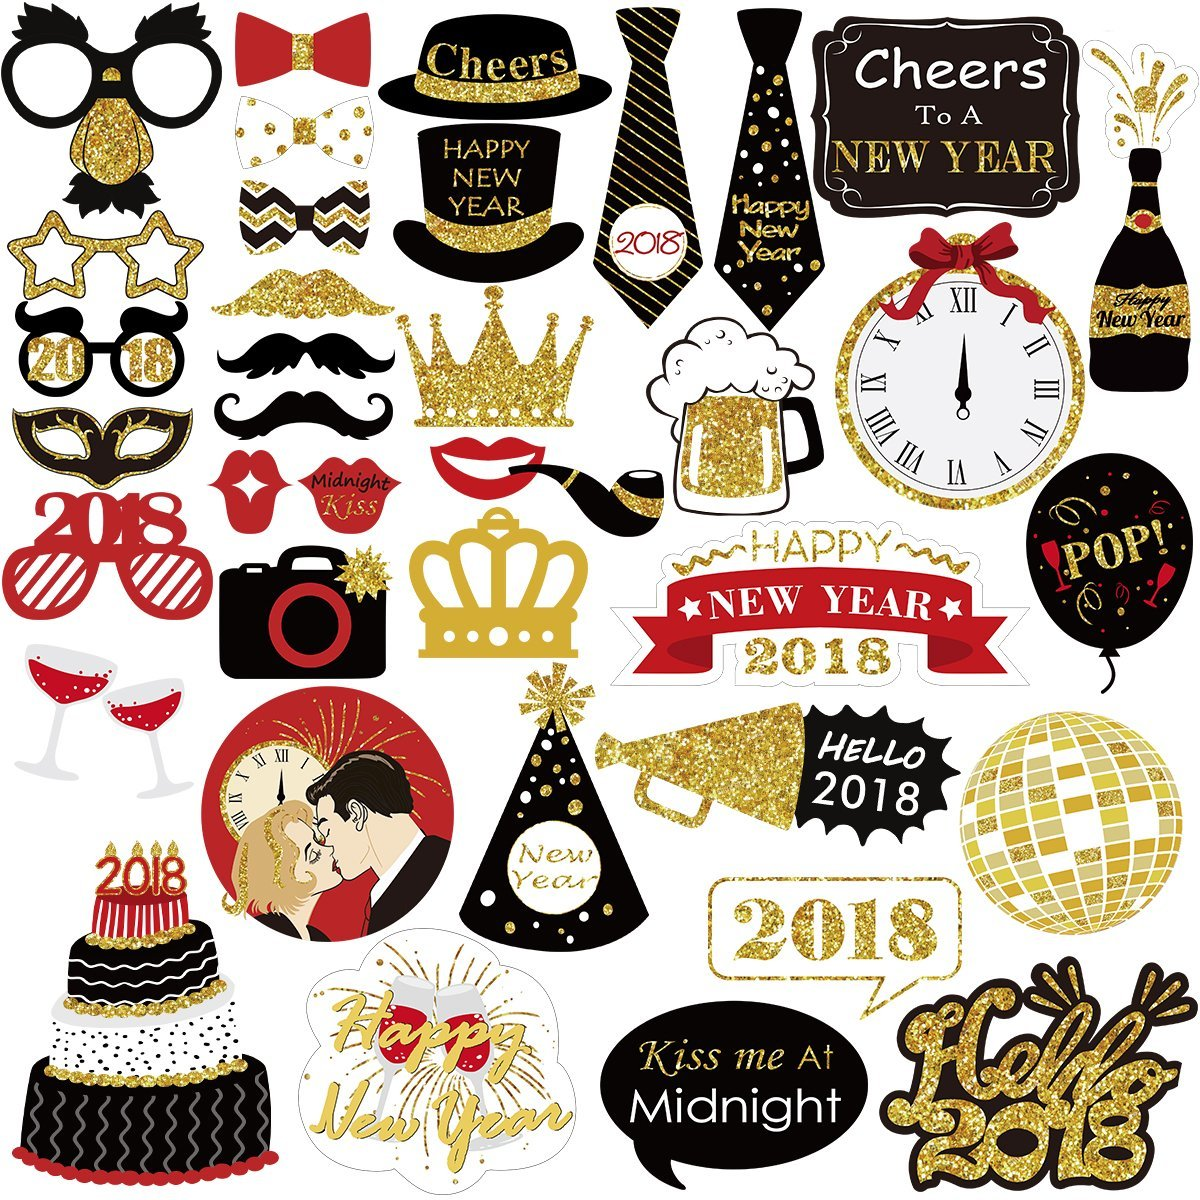 5 Celebration and Party Supplies ideas for your New Year's ...